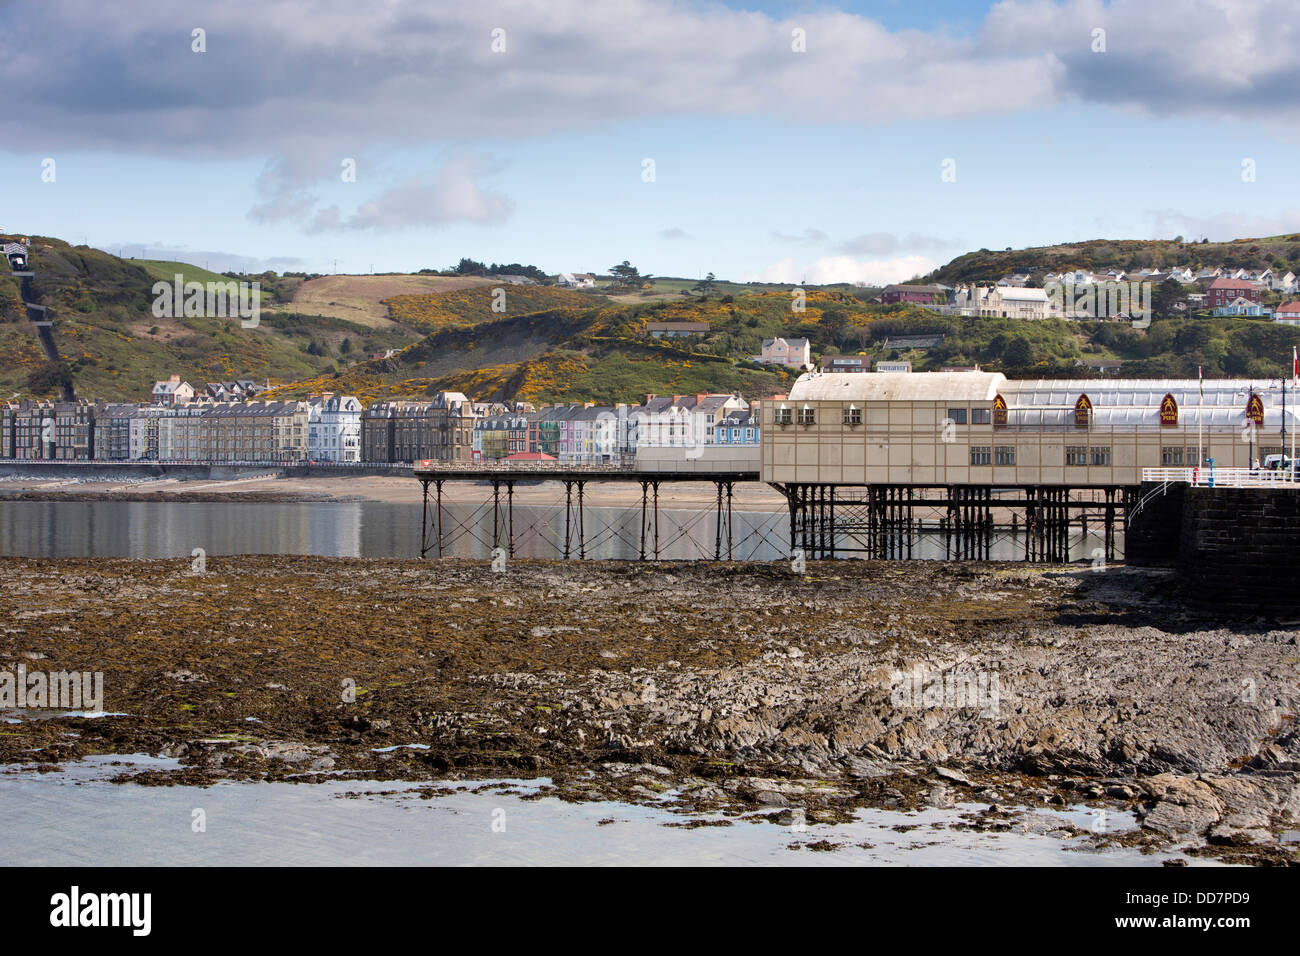 UK, Wales, Ceredigion, Aberystwyth, seafront and pier at low tide - Stock Image